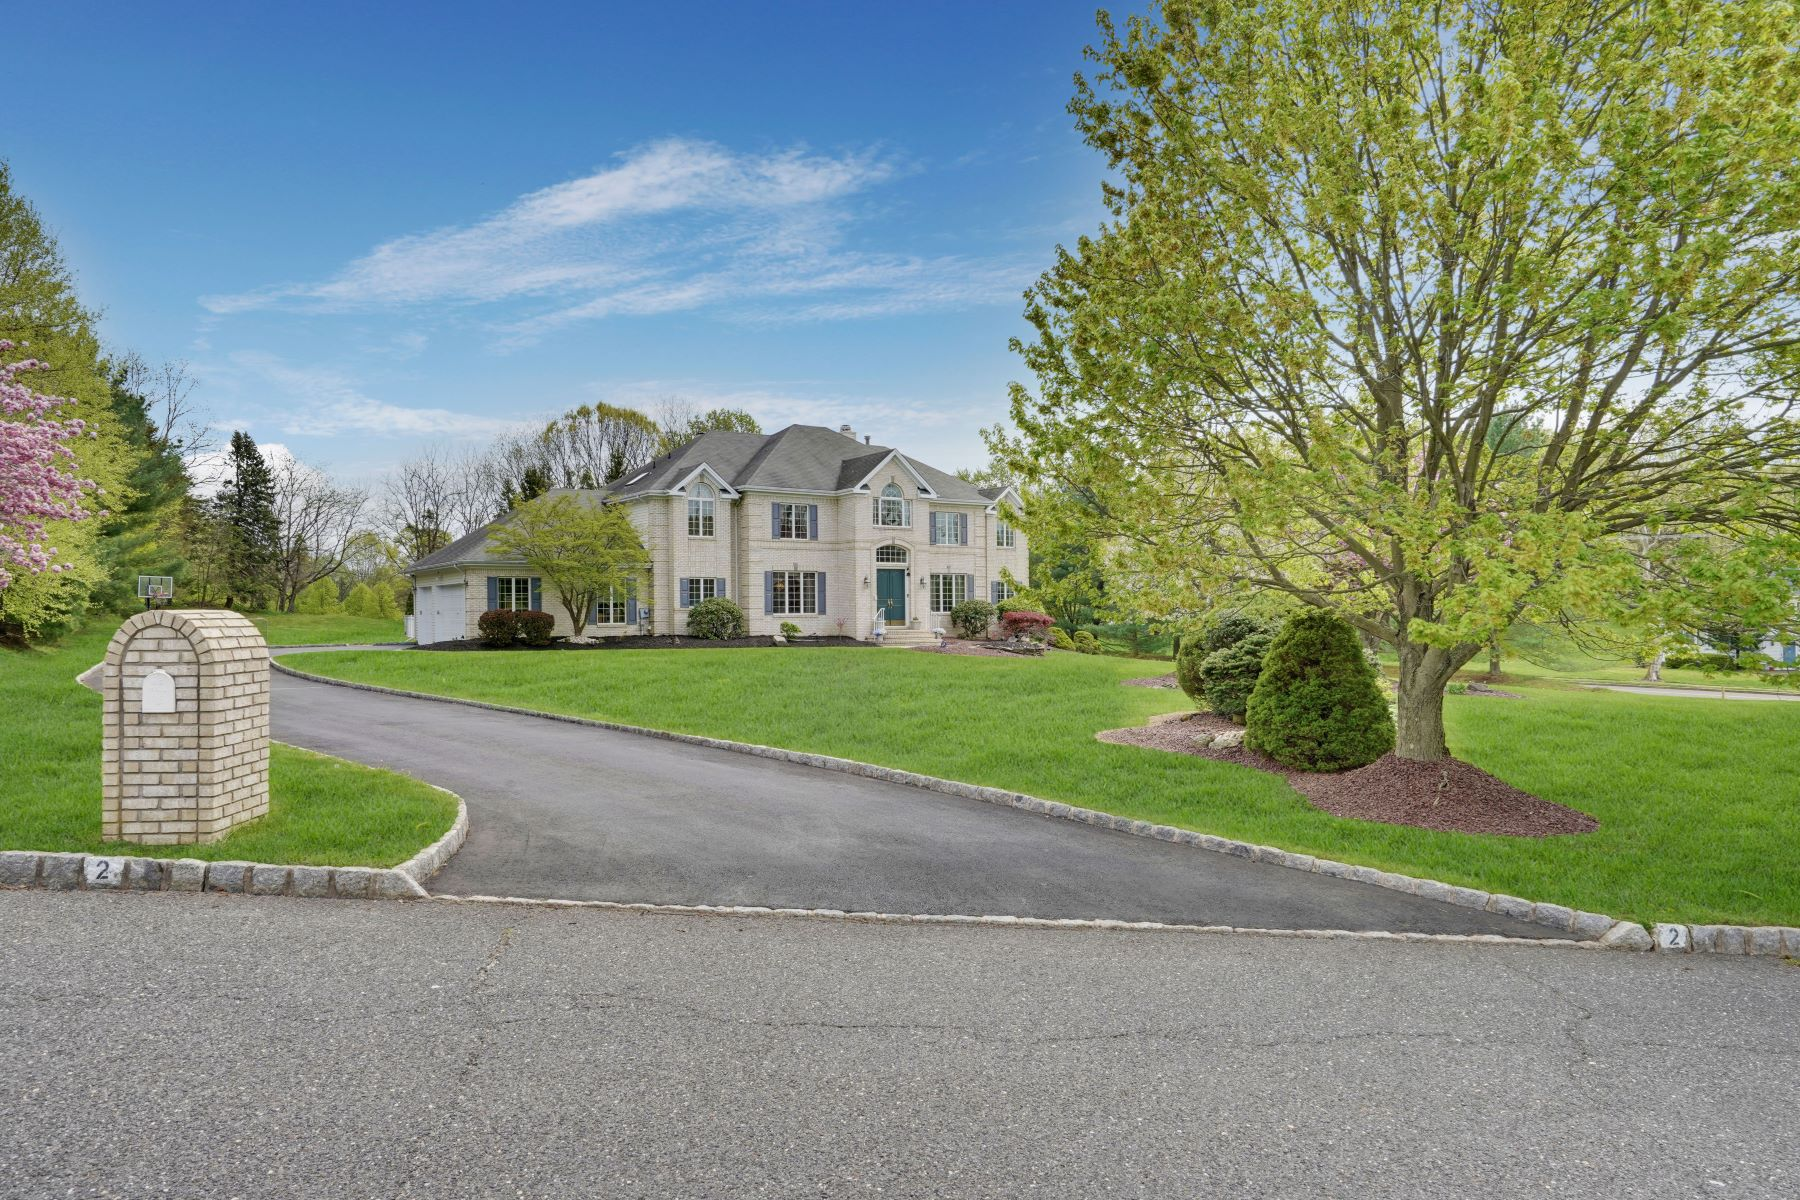 Single Family Homes for Sale at Exceptional Value 2 Bordeaux Lane Holmdel, New Jersey 07733 United States